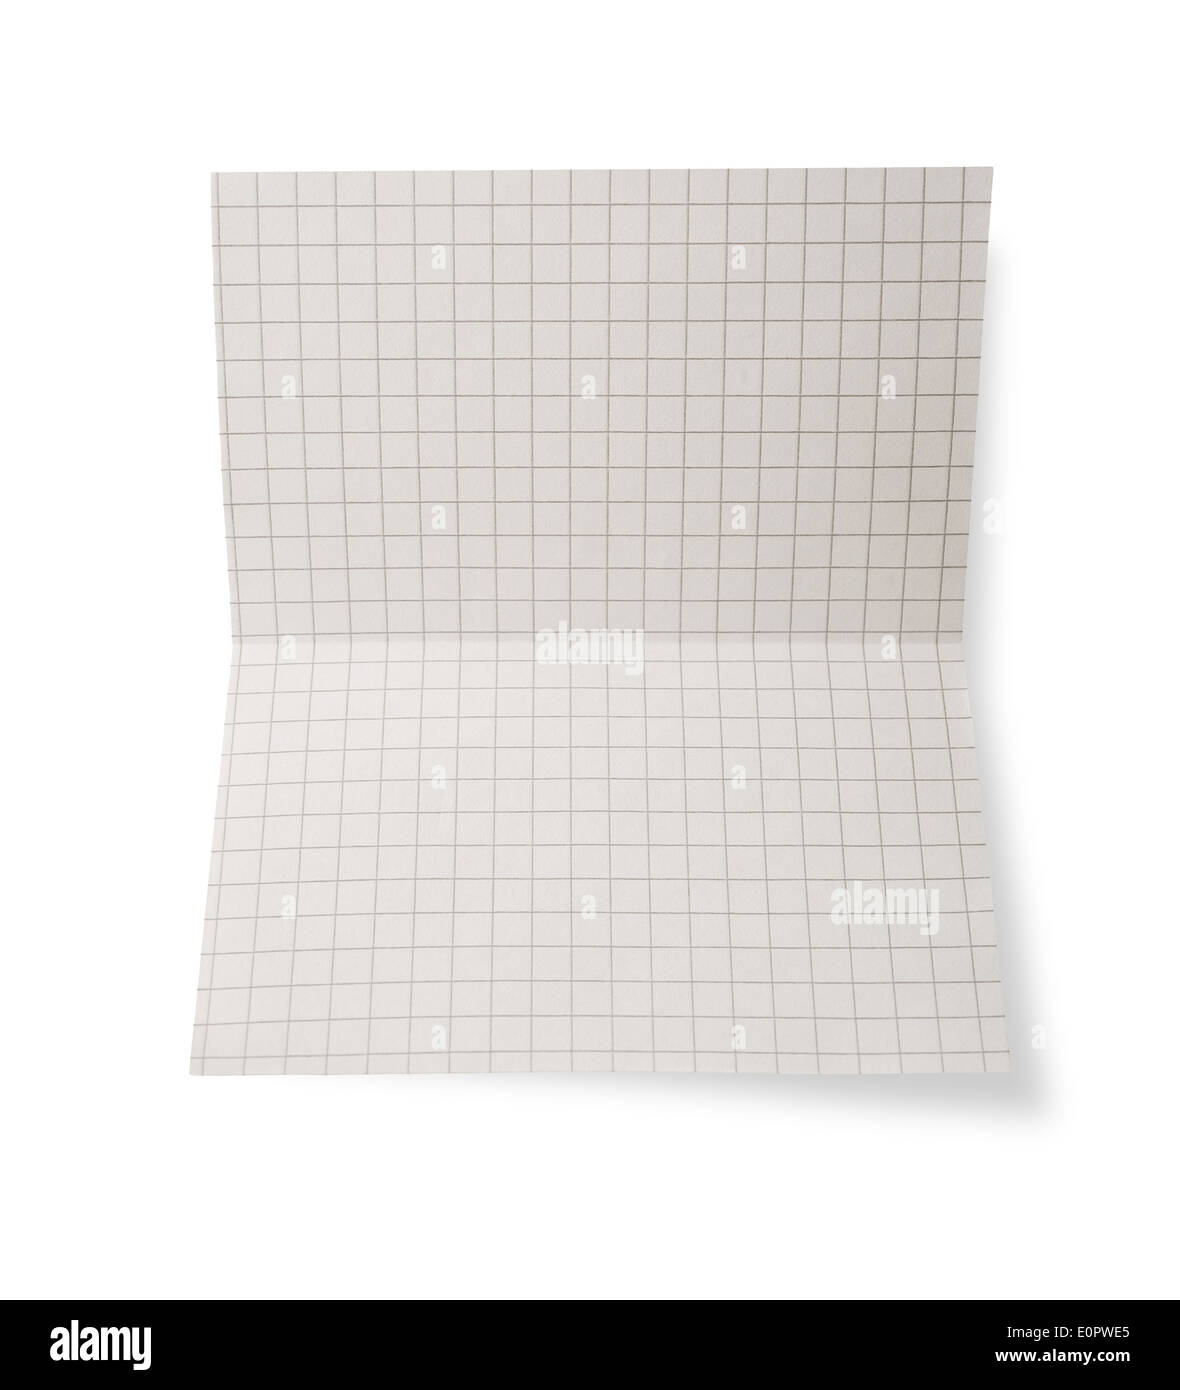 Paper sheet on white background - Stock Image